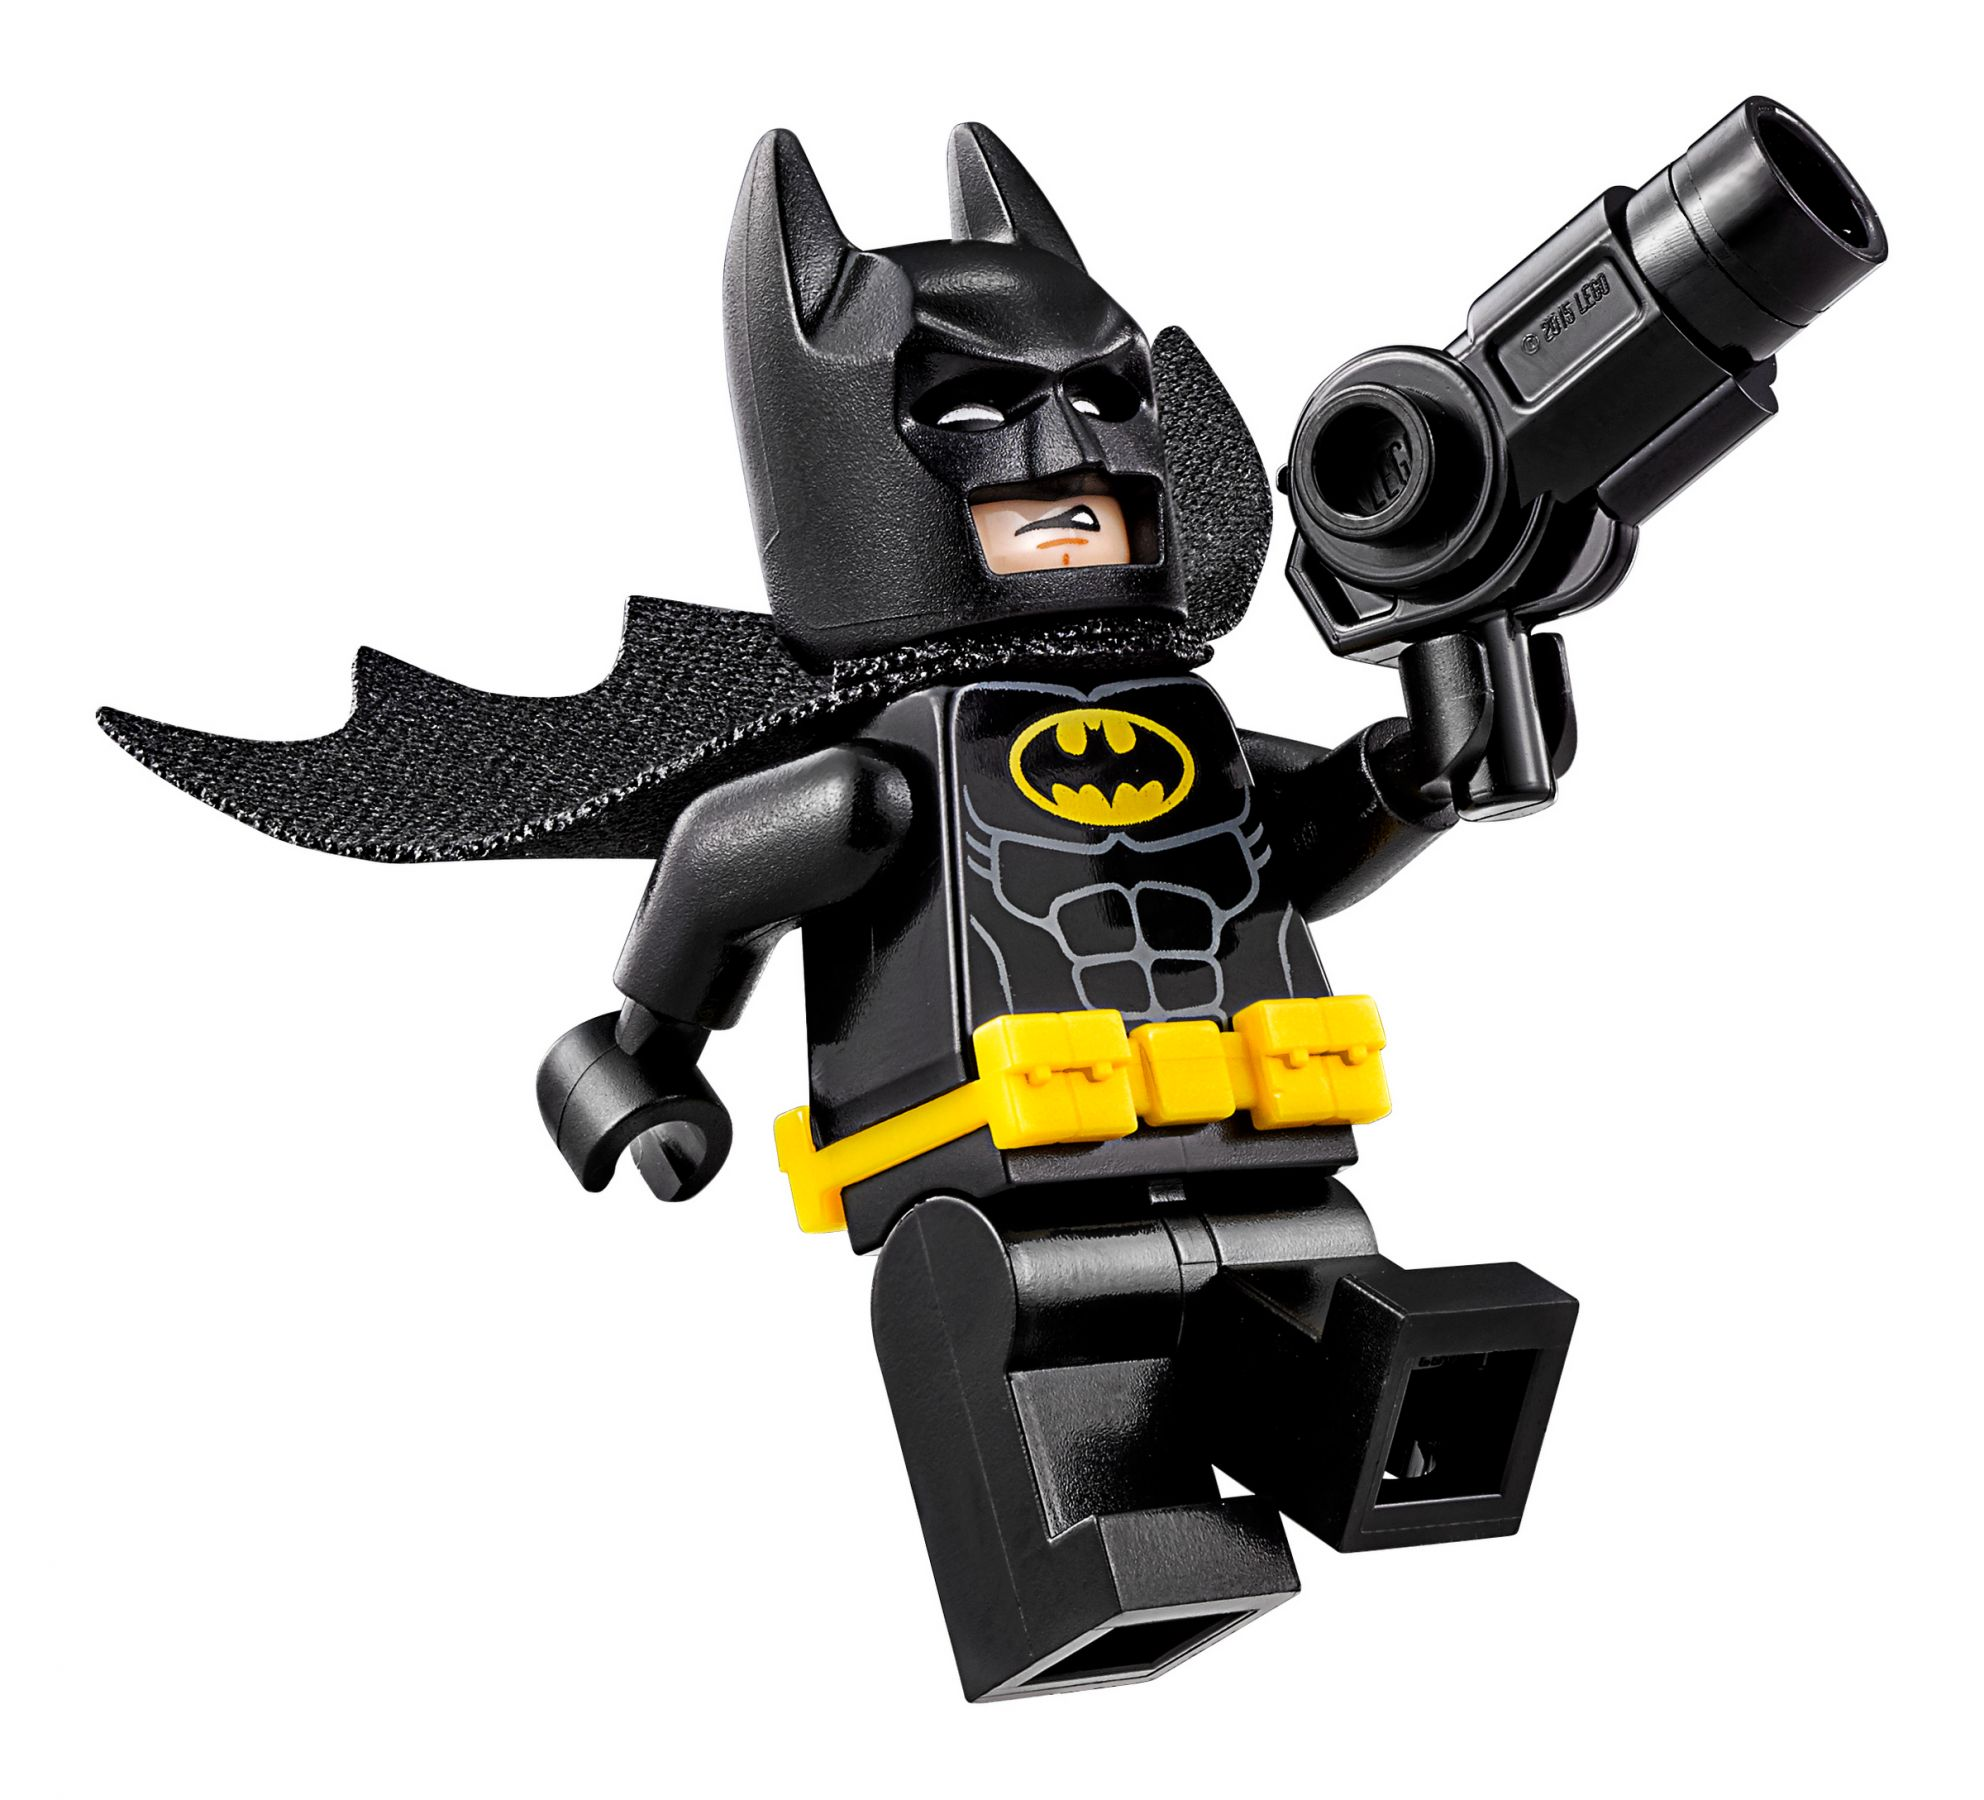 LEGO The LEGO Batman Movie 70900 Jokers Flucht mit den Ballons LEGO_70900_alt3.jpg